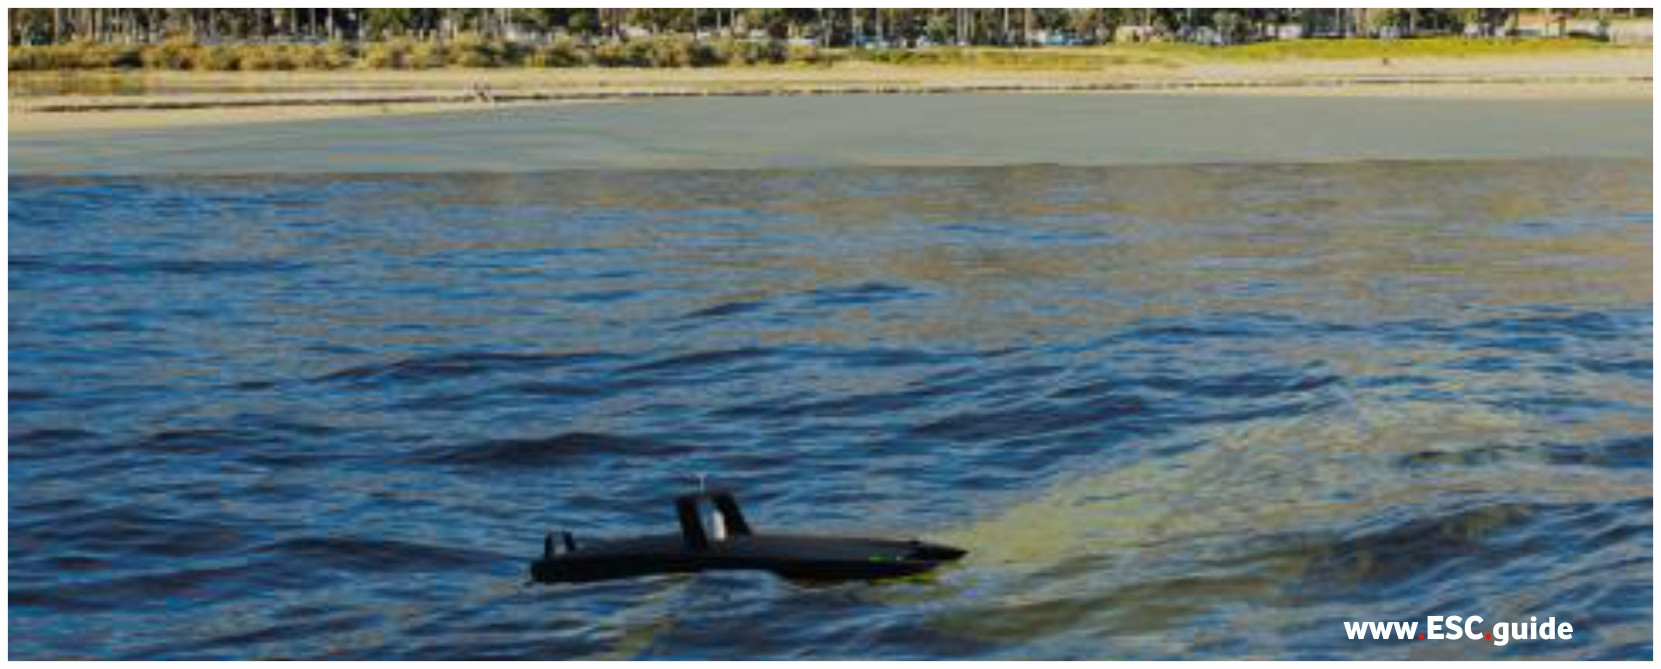 MANTAS T12-EOD with Forward Looking Sonar (FLS) and High-Resolution Side Scan Sonar to locate shallow water mines.